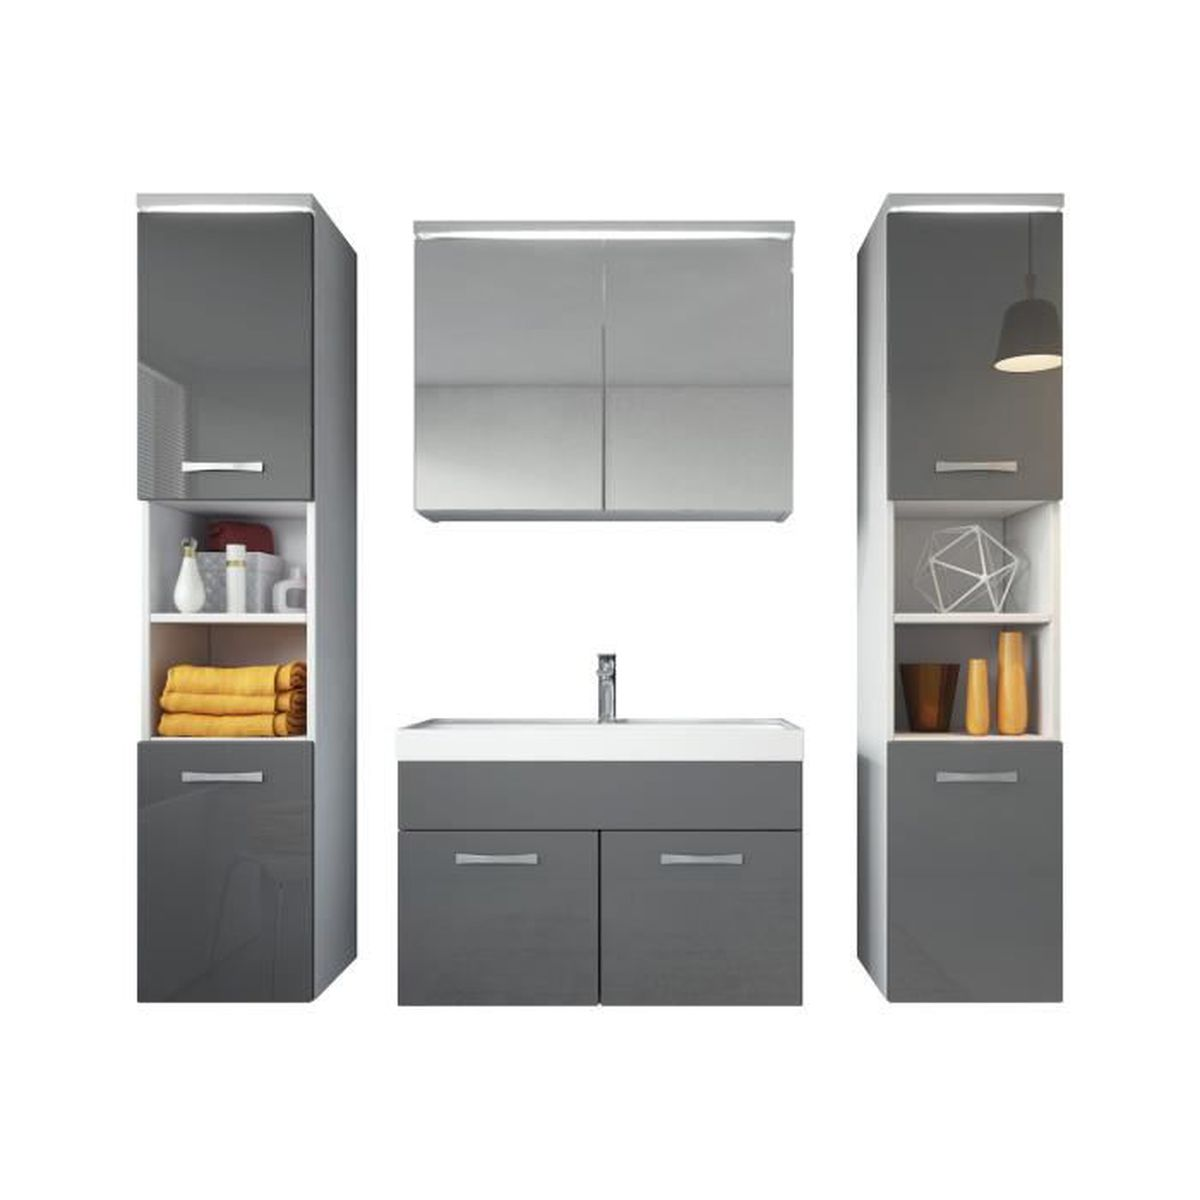 meuble de salle de bain paso xl armoire de rangement meuble lavabo vier meuble lavabo gris. Black Bedroom Furniture Sets. Home Design Ideas